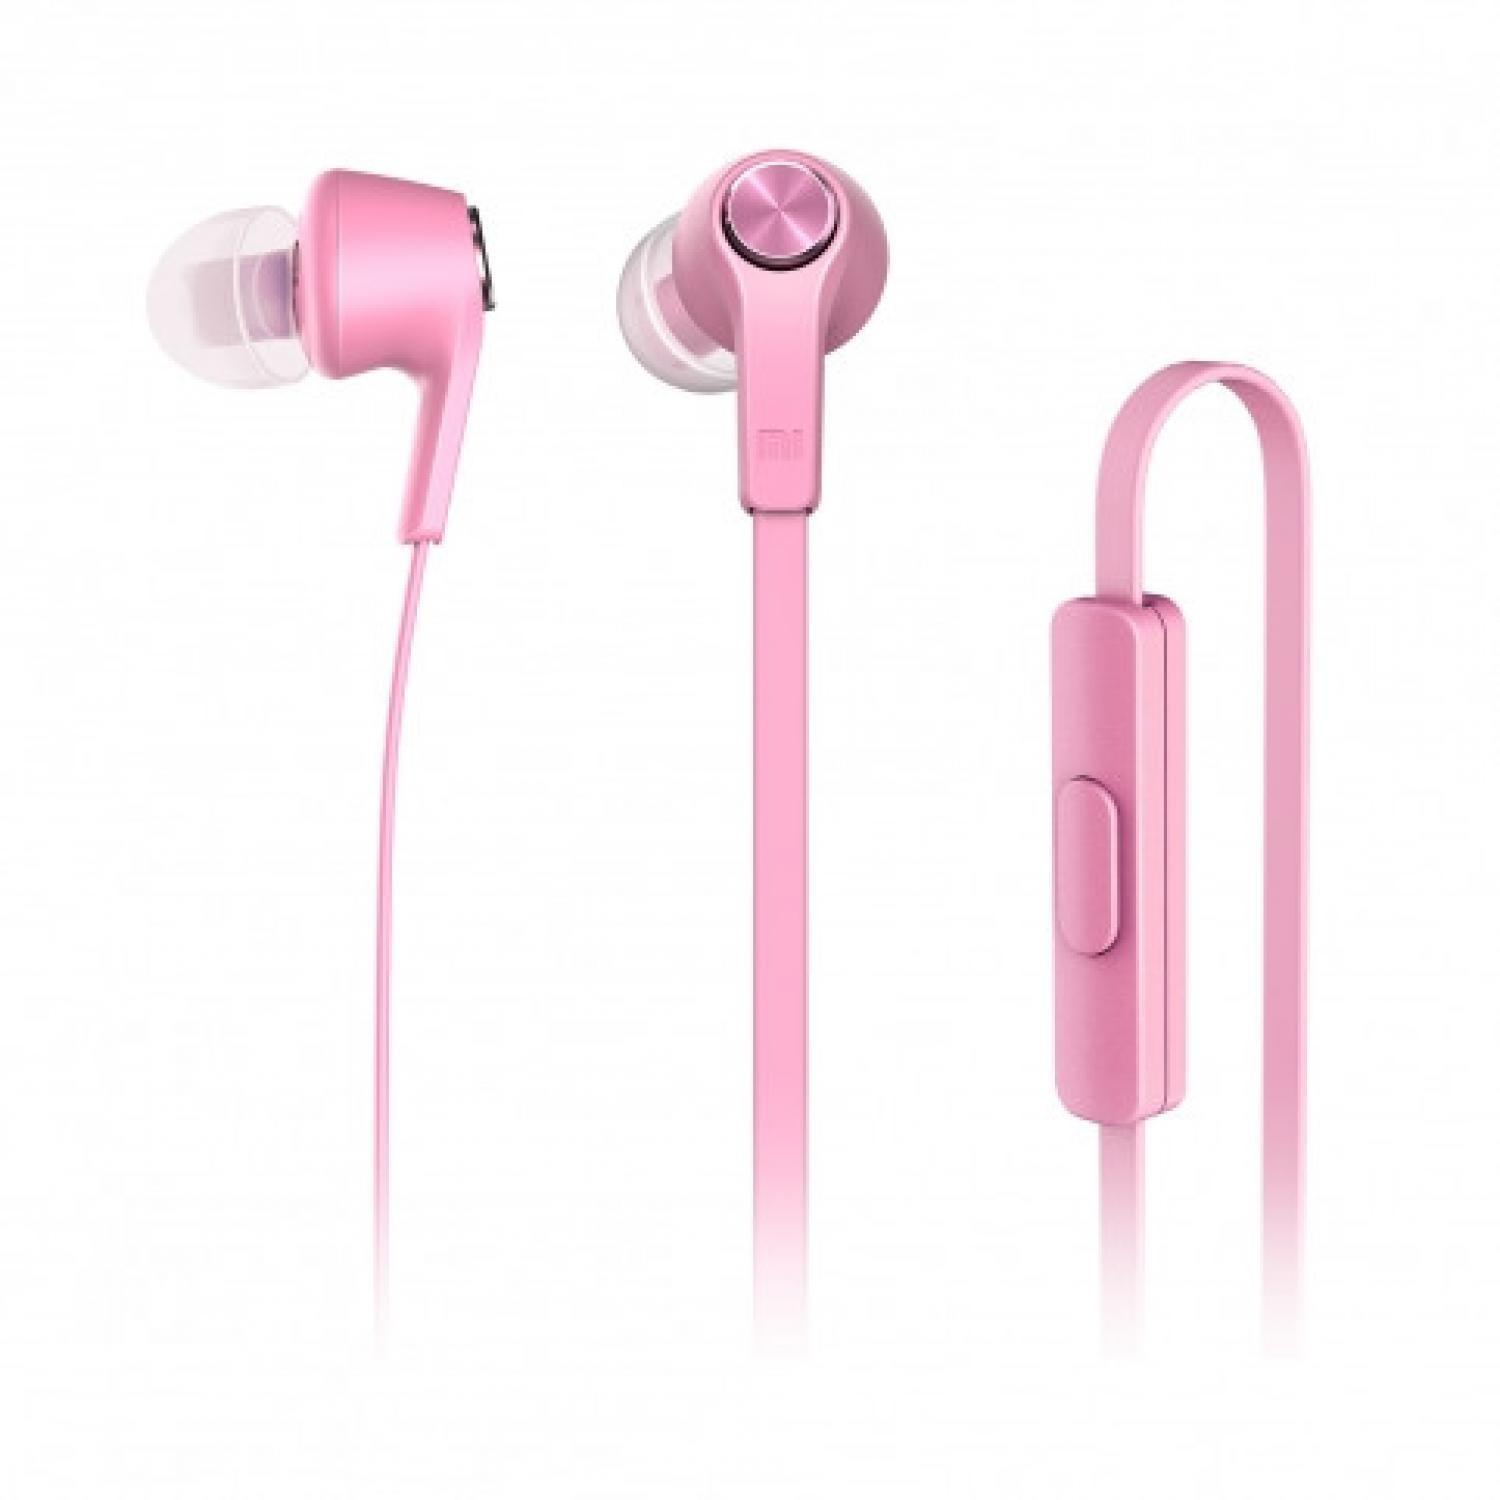 Best Seller!!! Xiaomi Mi Piston Huosai Earphone Colorful Edition (OEM) Original Asli Murah